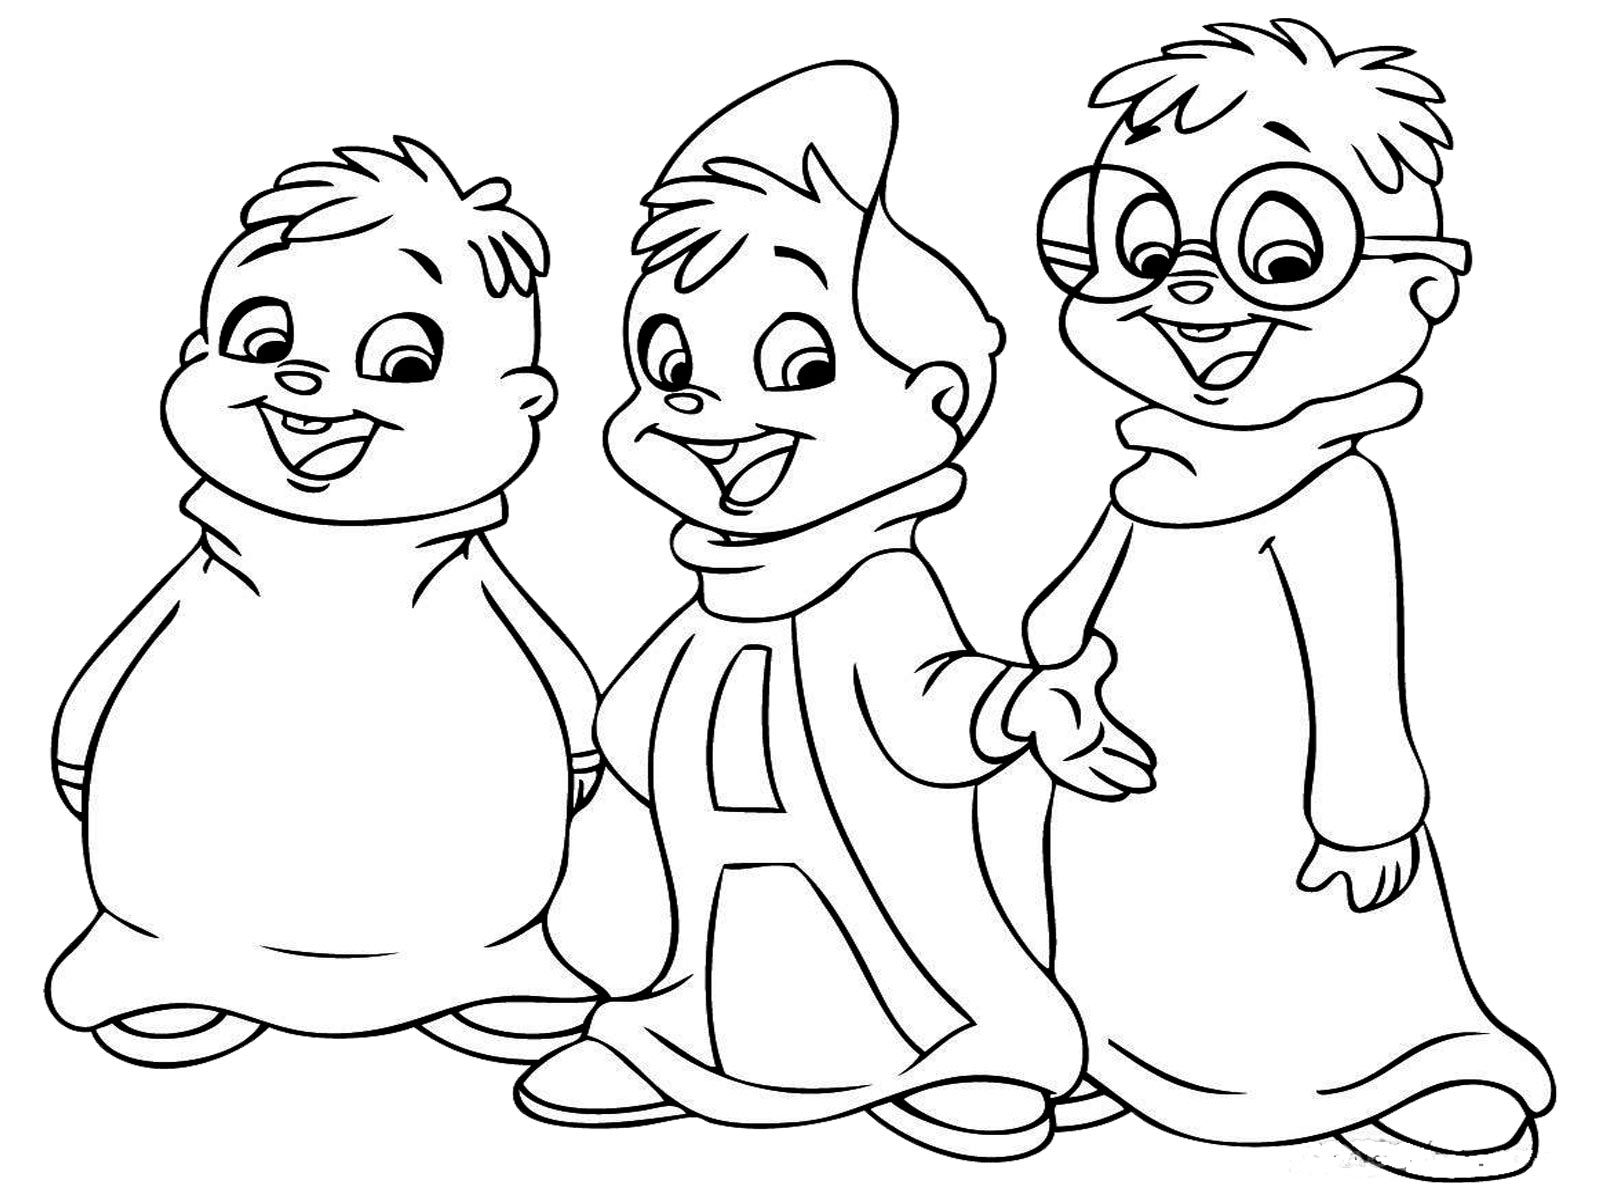 nickelodeon ryan coloring pages popular ryans world toys coloring pages image desain pages ryan coloring nickelodeon